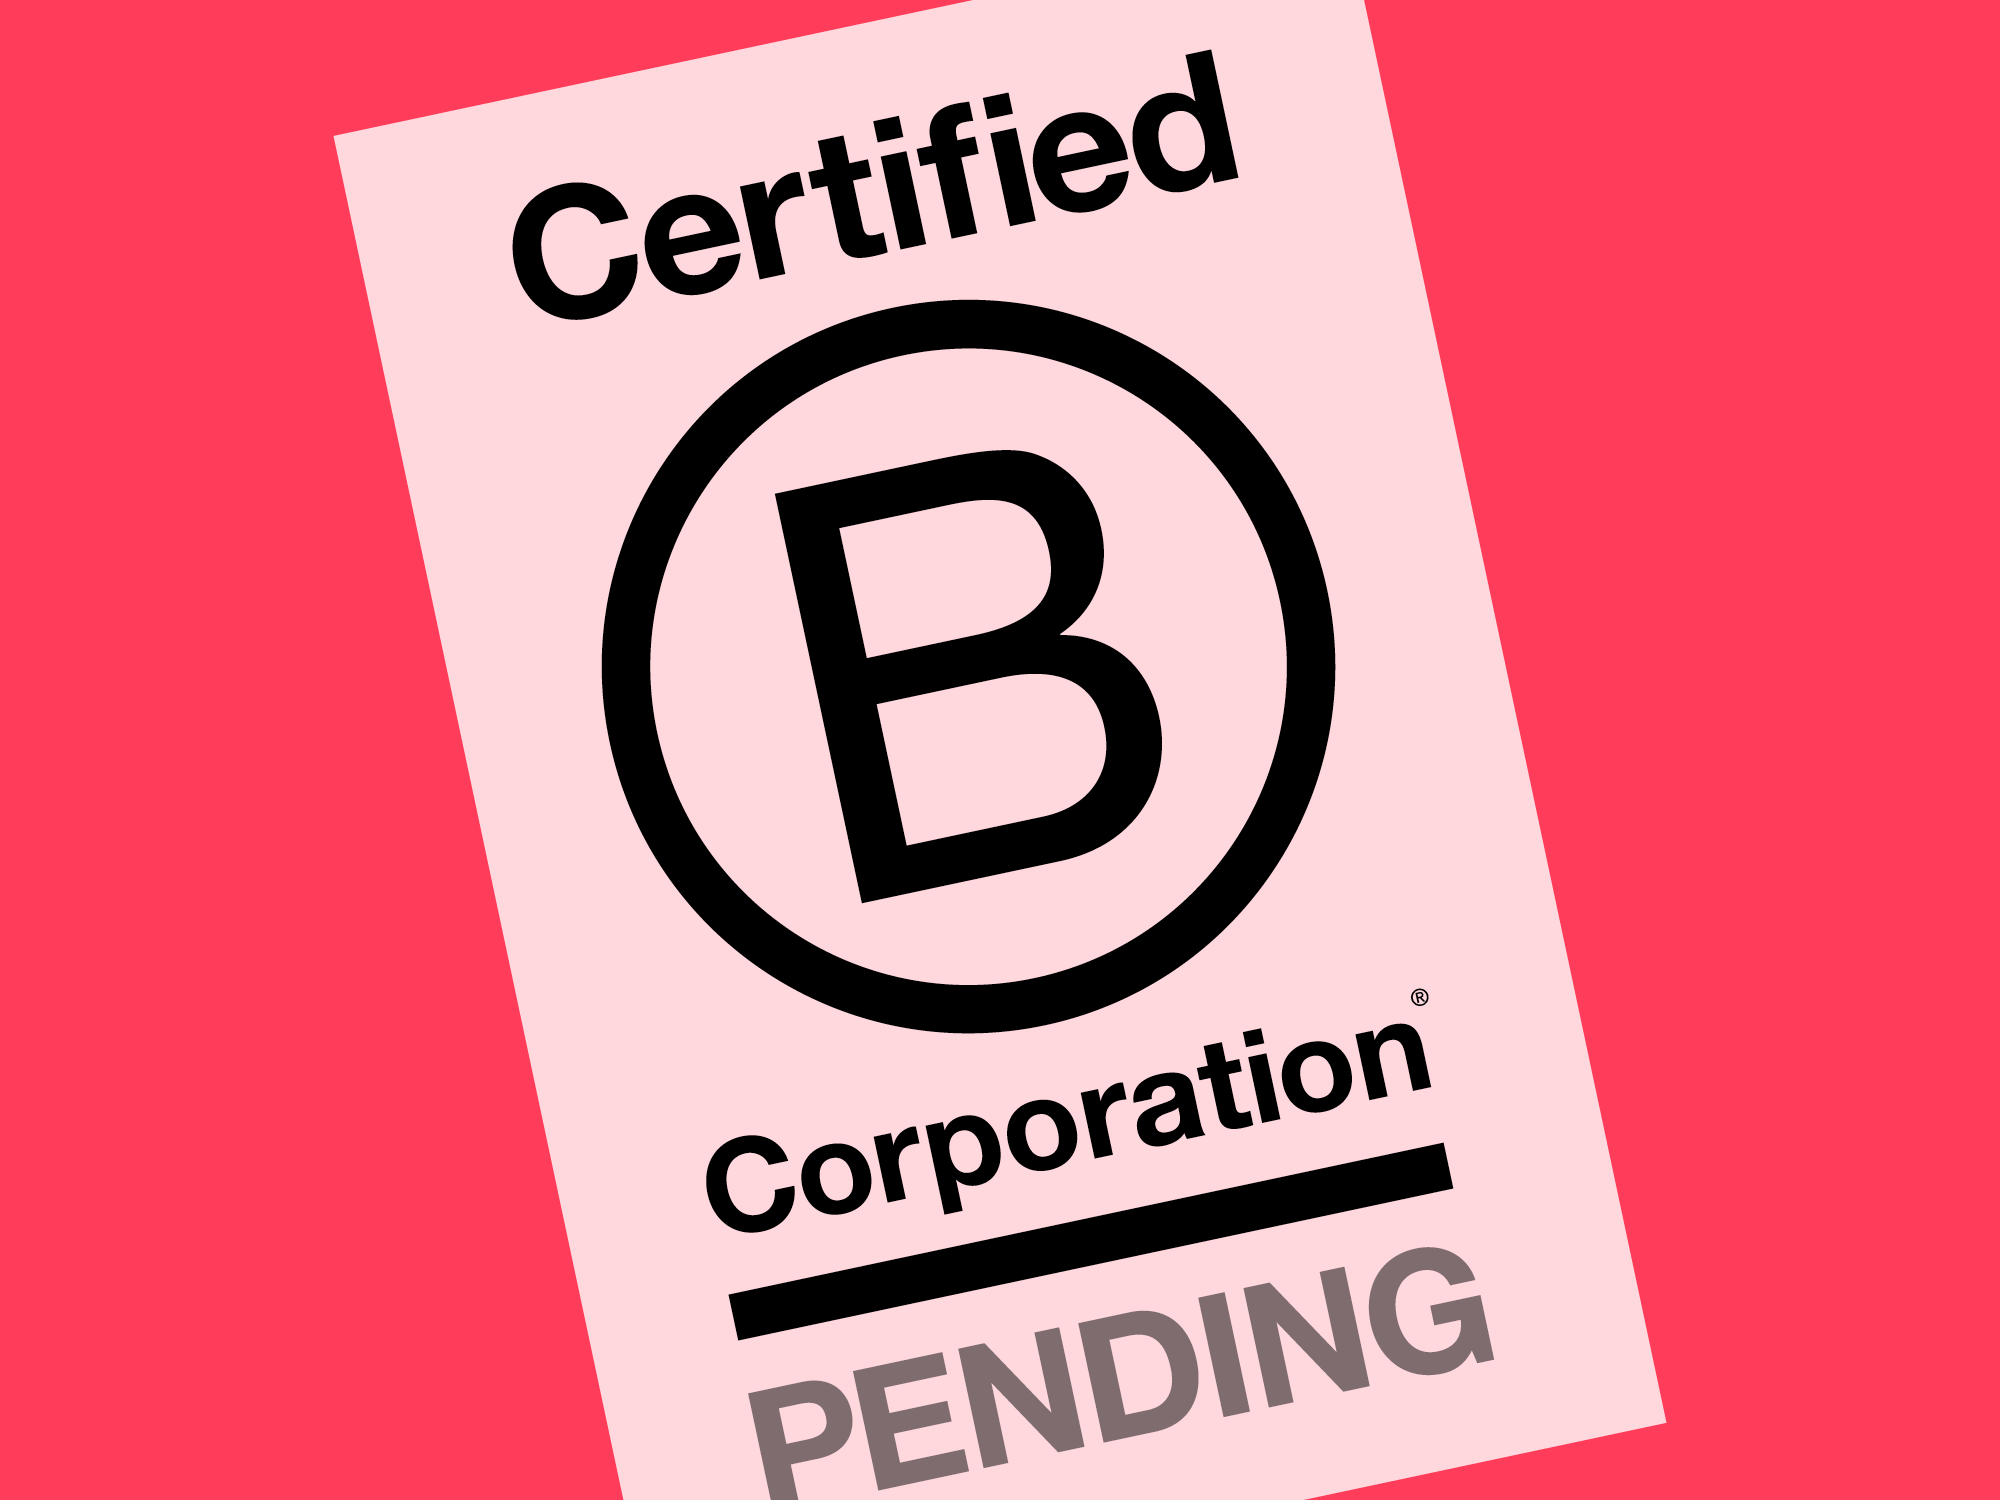 WHY REBEL ENERGY IS APPLYING FOR FULL B CORP CERTIFICATION